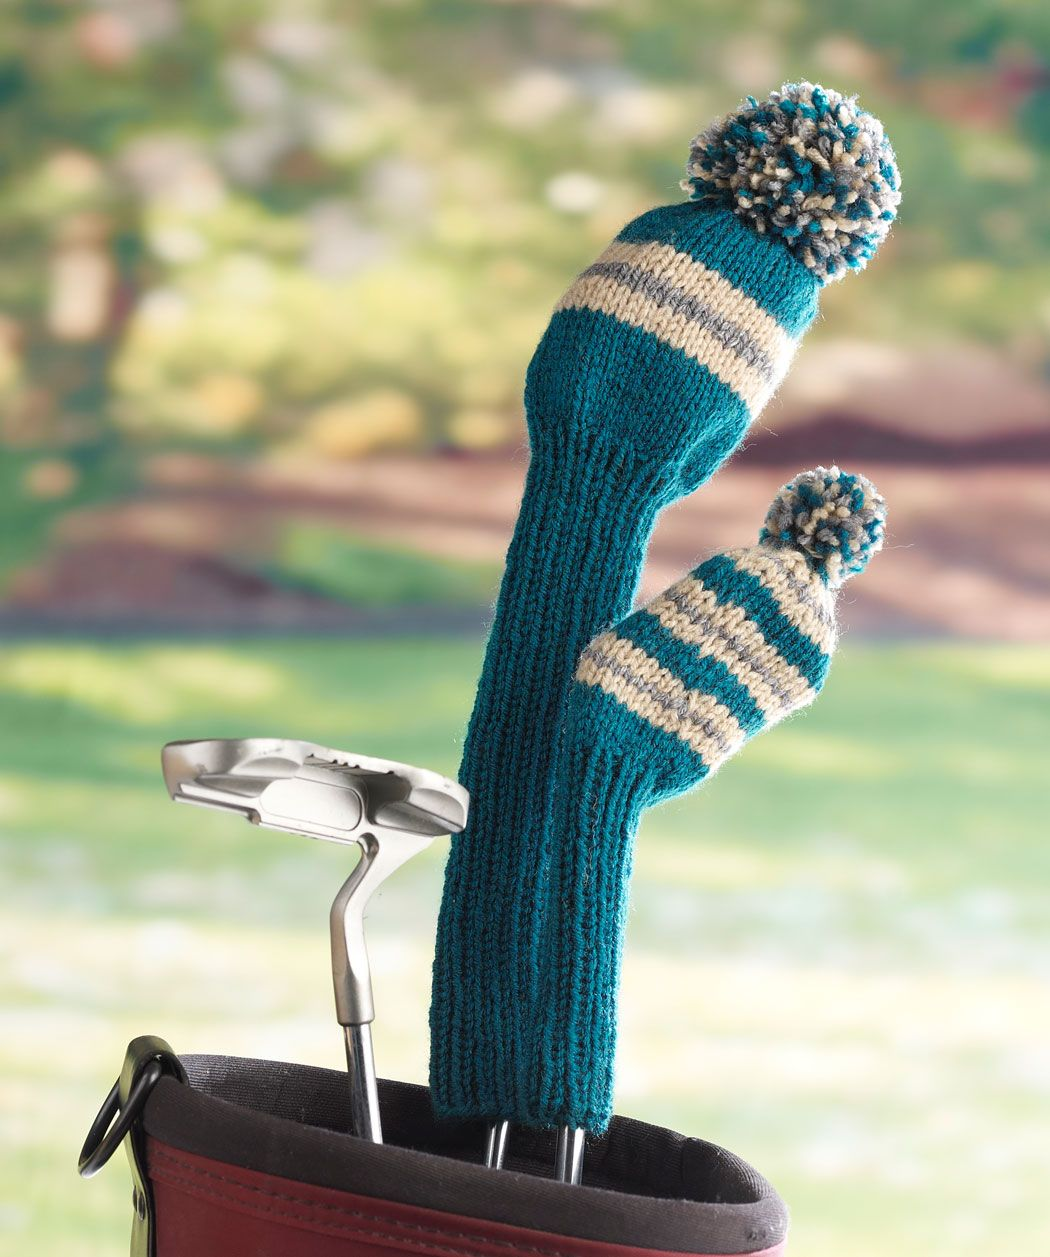 Knit Golf Head Covers Pattern | A Knitting Blog | Knitting ...